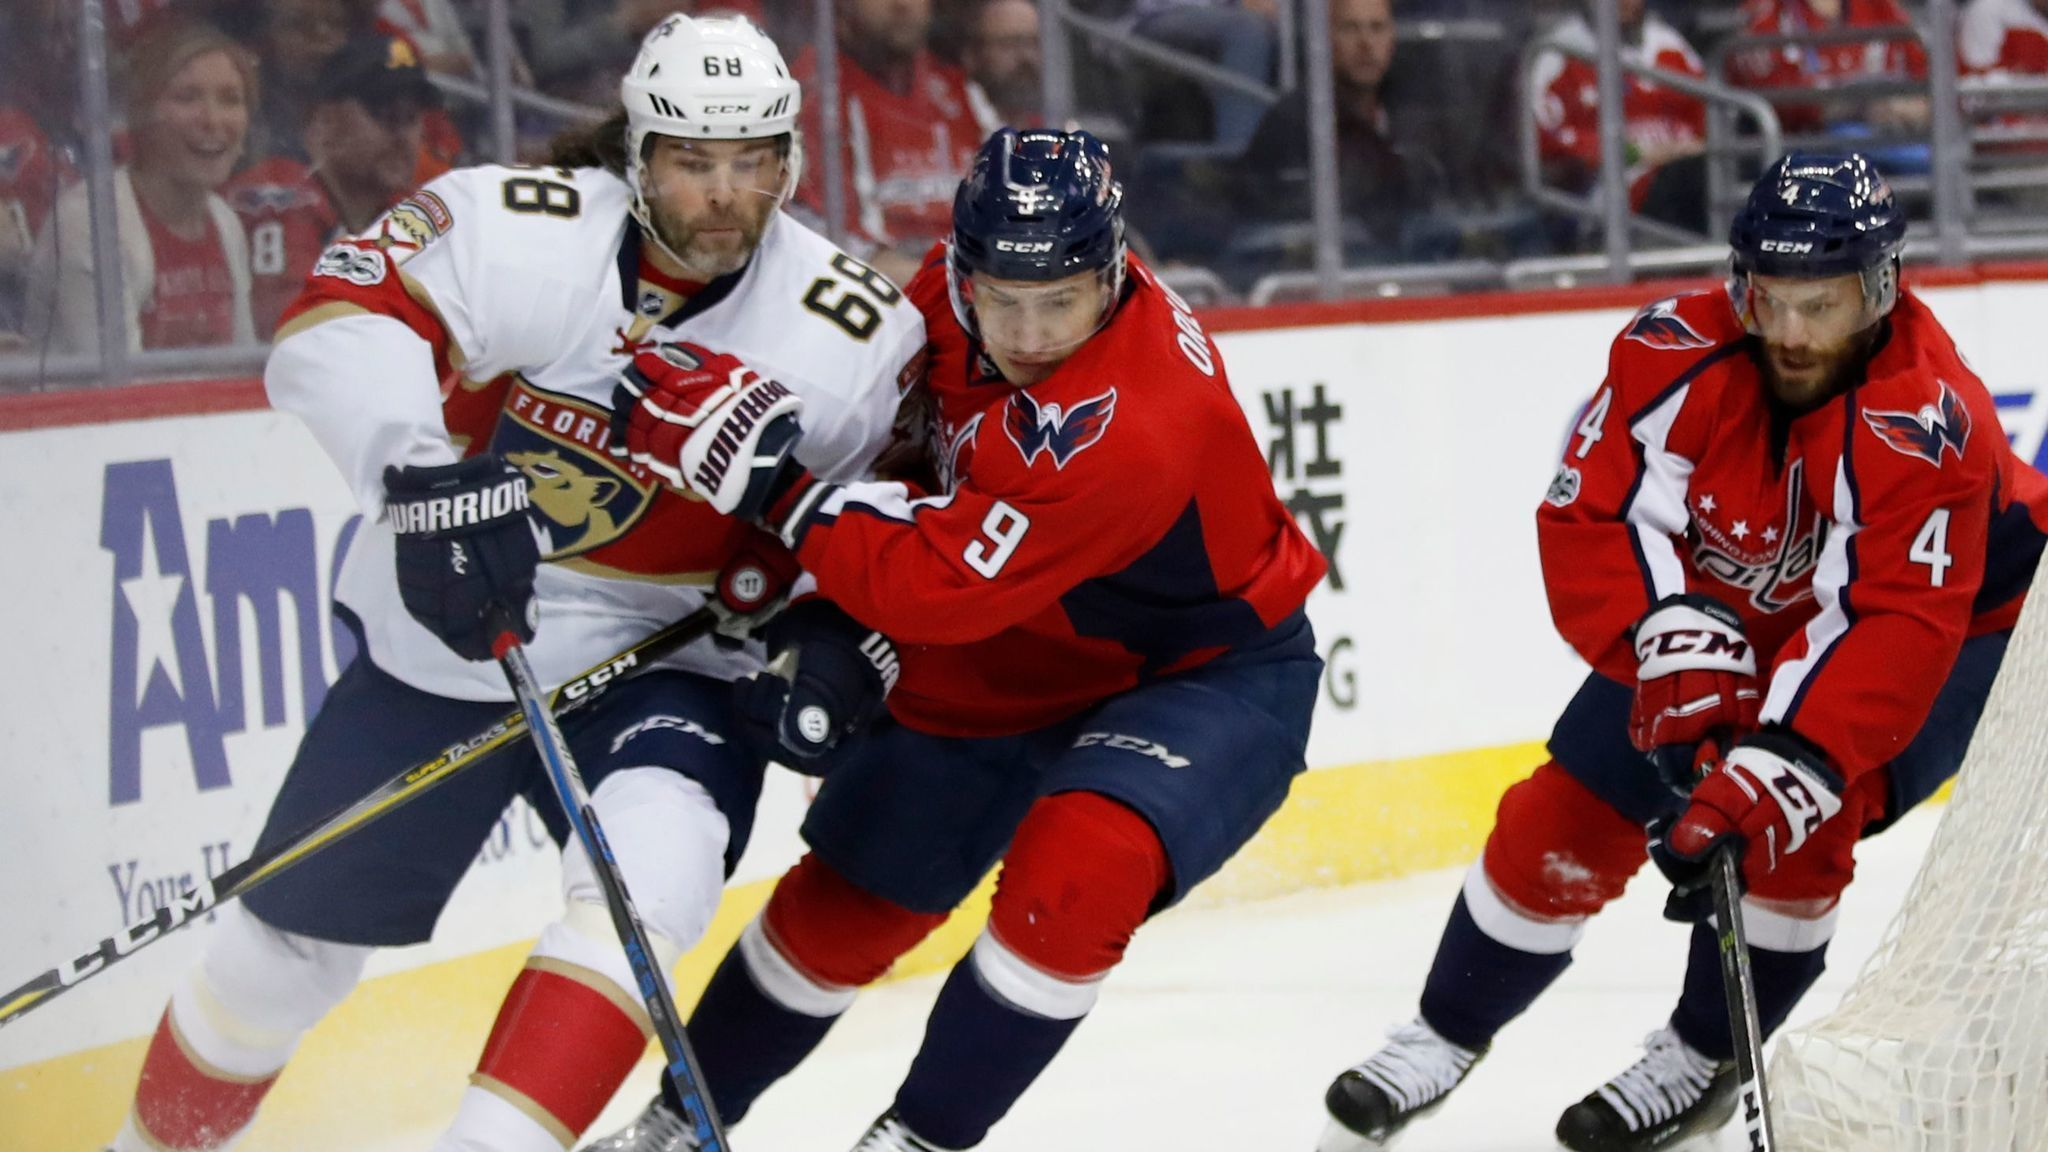 Fl-sp-panthers-capitals-20170409